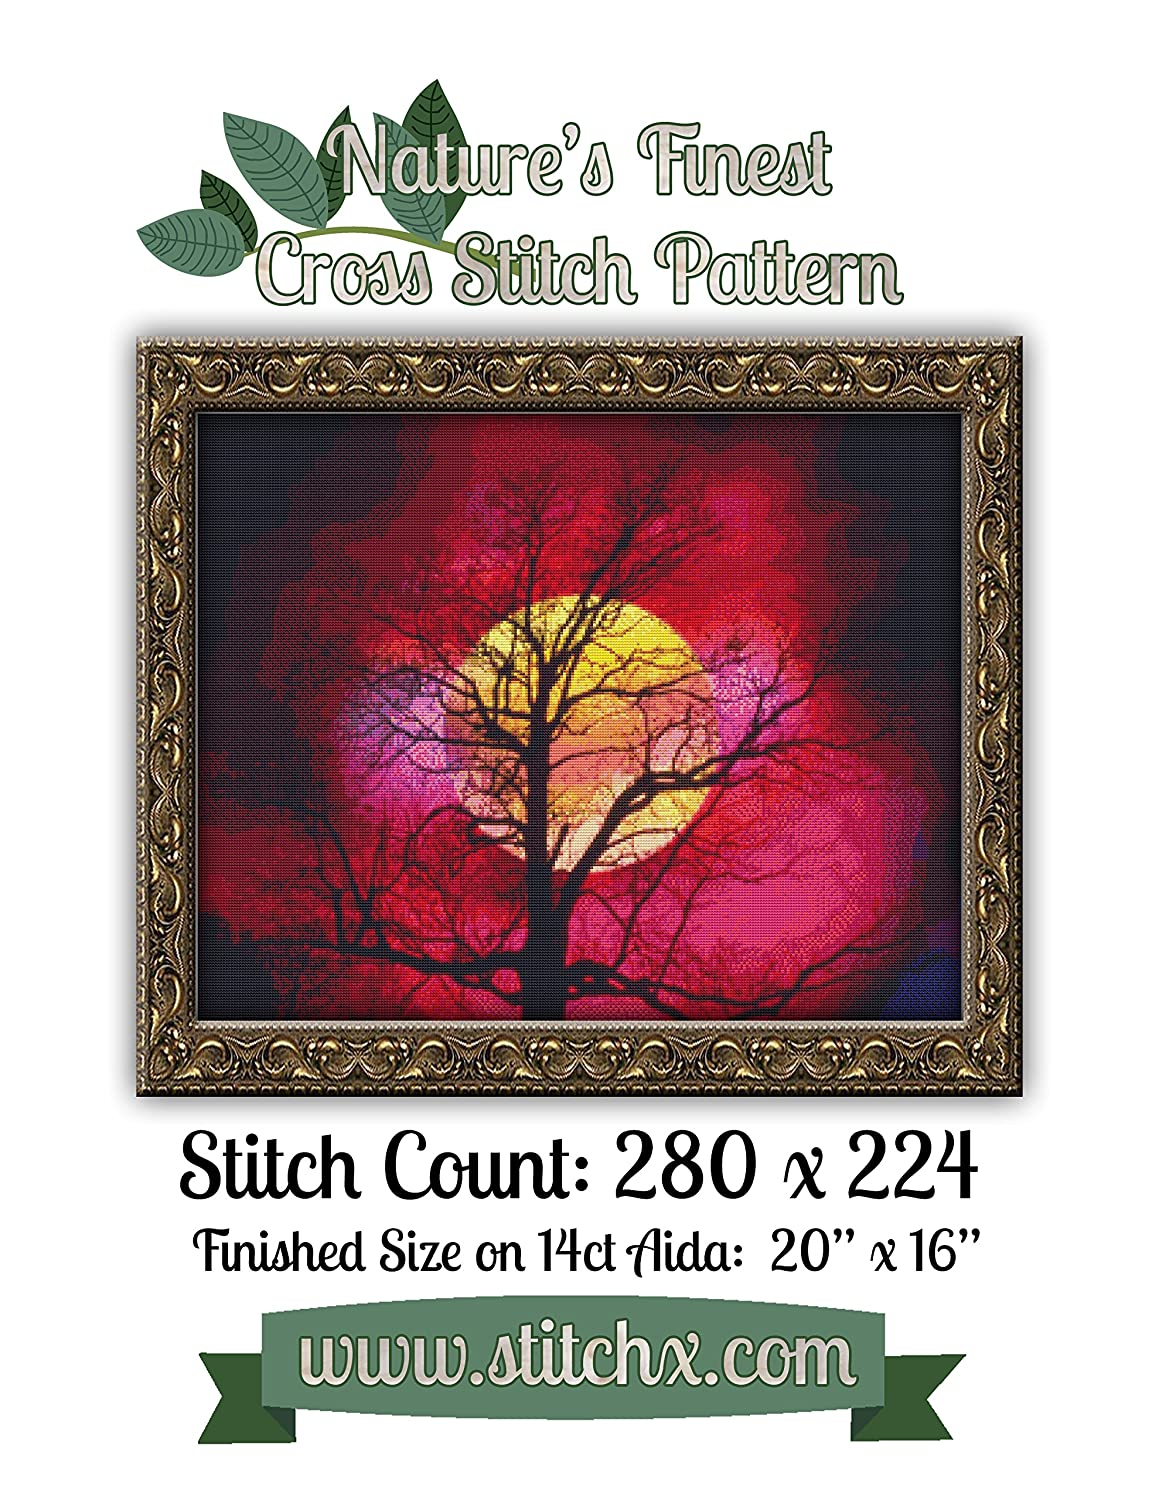 Natures Finest No Not a kit 30 Cross Stitch Pattern Beautiful Moon against Tree Silhouette Cross Stitch Pattern only